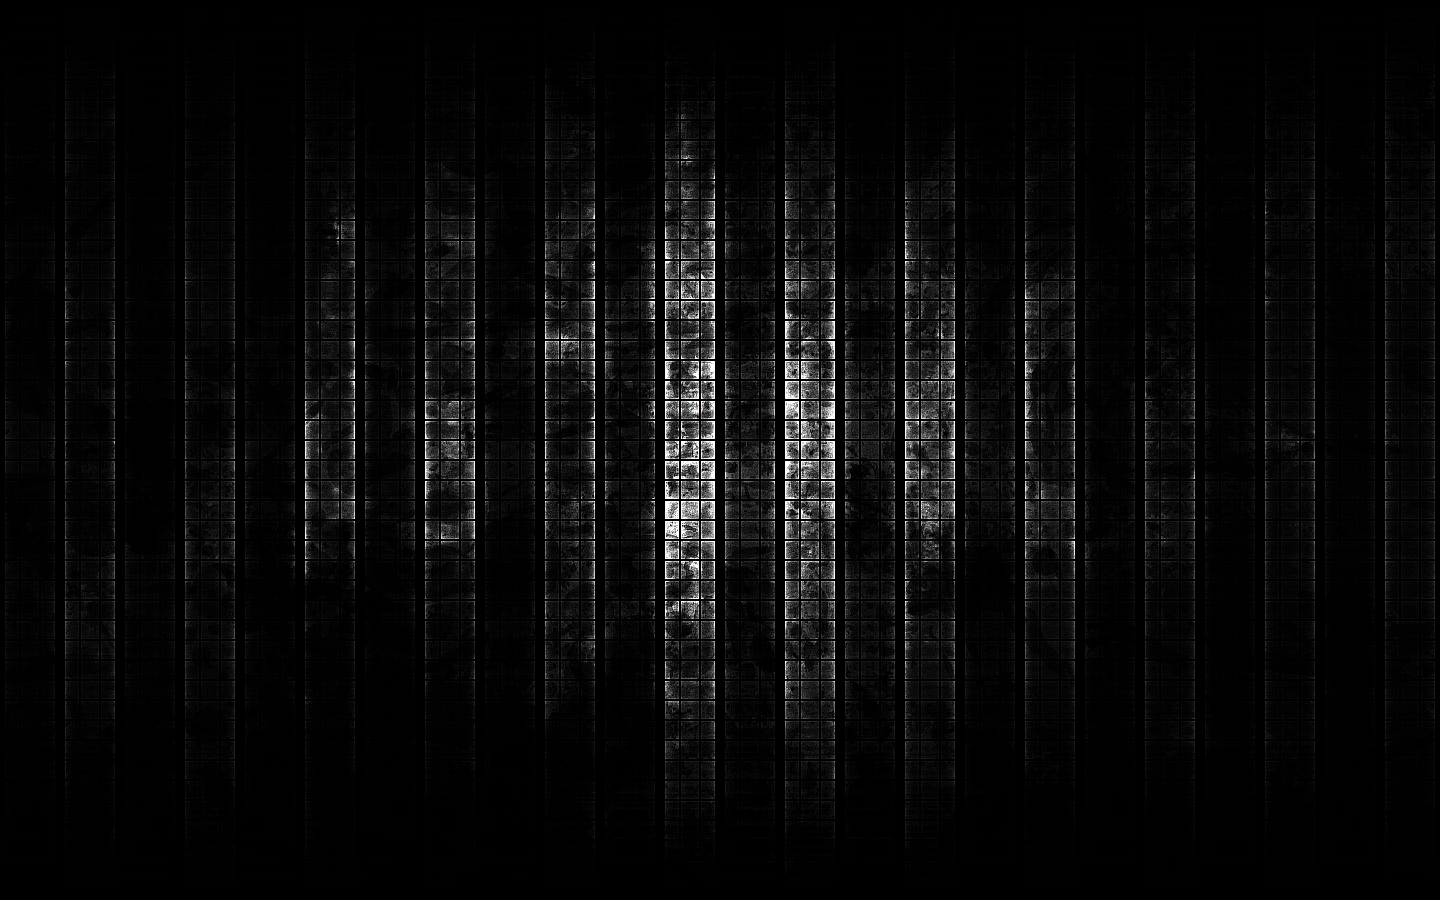 Download 87+ Background Black Png HD Paling Keren